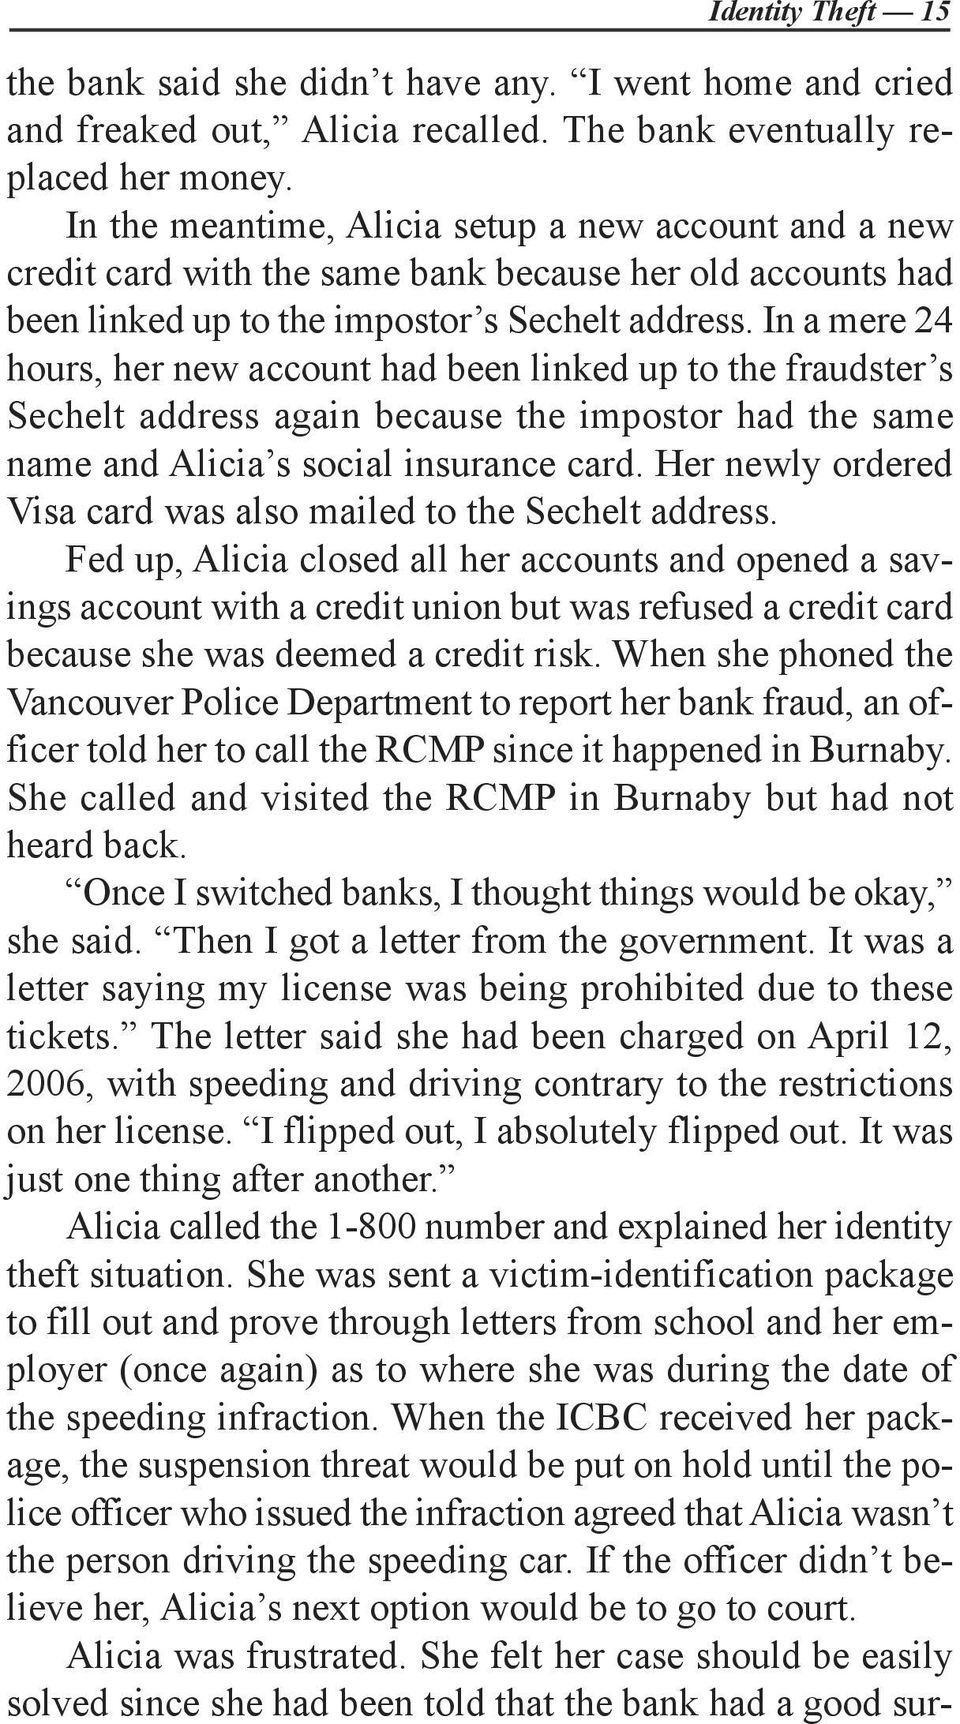 In a mere 24 hours, her new account had been linked up to the fraudster s Sechelt address again because the impostor had the same name and Alicia s social insurance card.